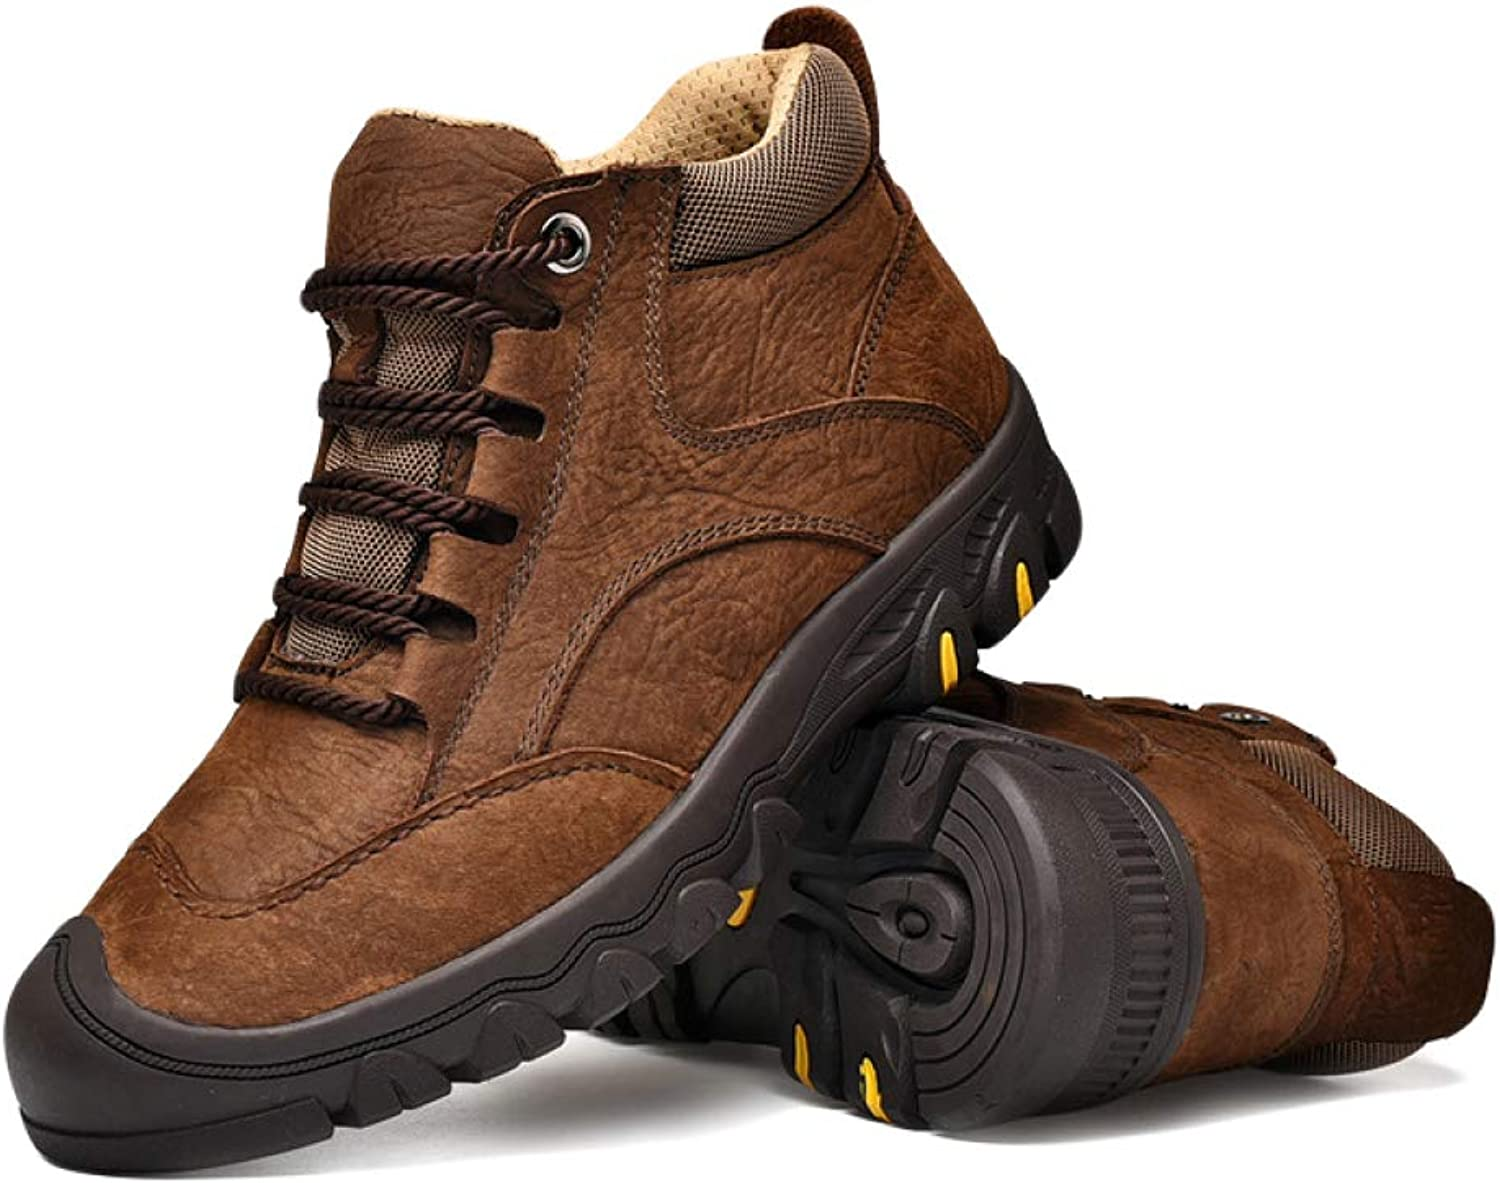 DSFGHE Mens Boots Chukka Booties Leisure Work Boots Non-Slip Hiking shoes Plus Velvet Motorcycle Boots